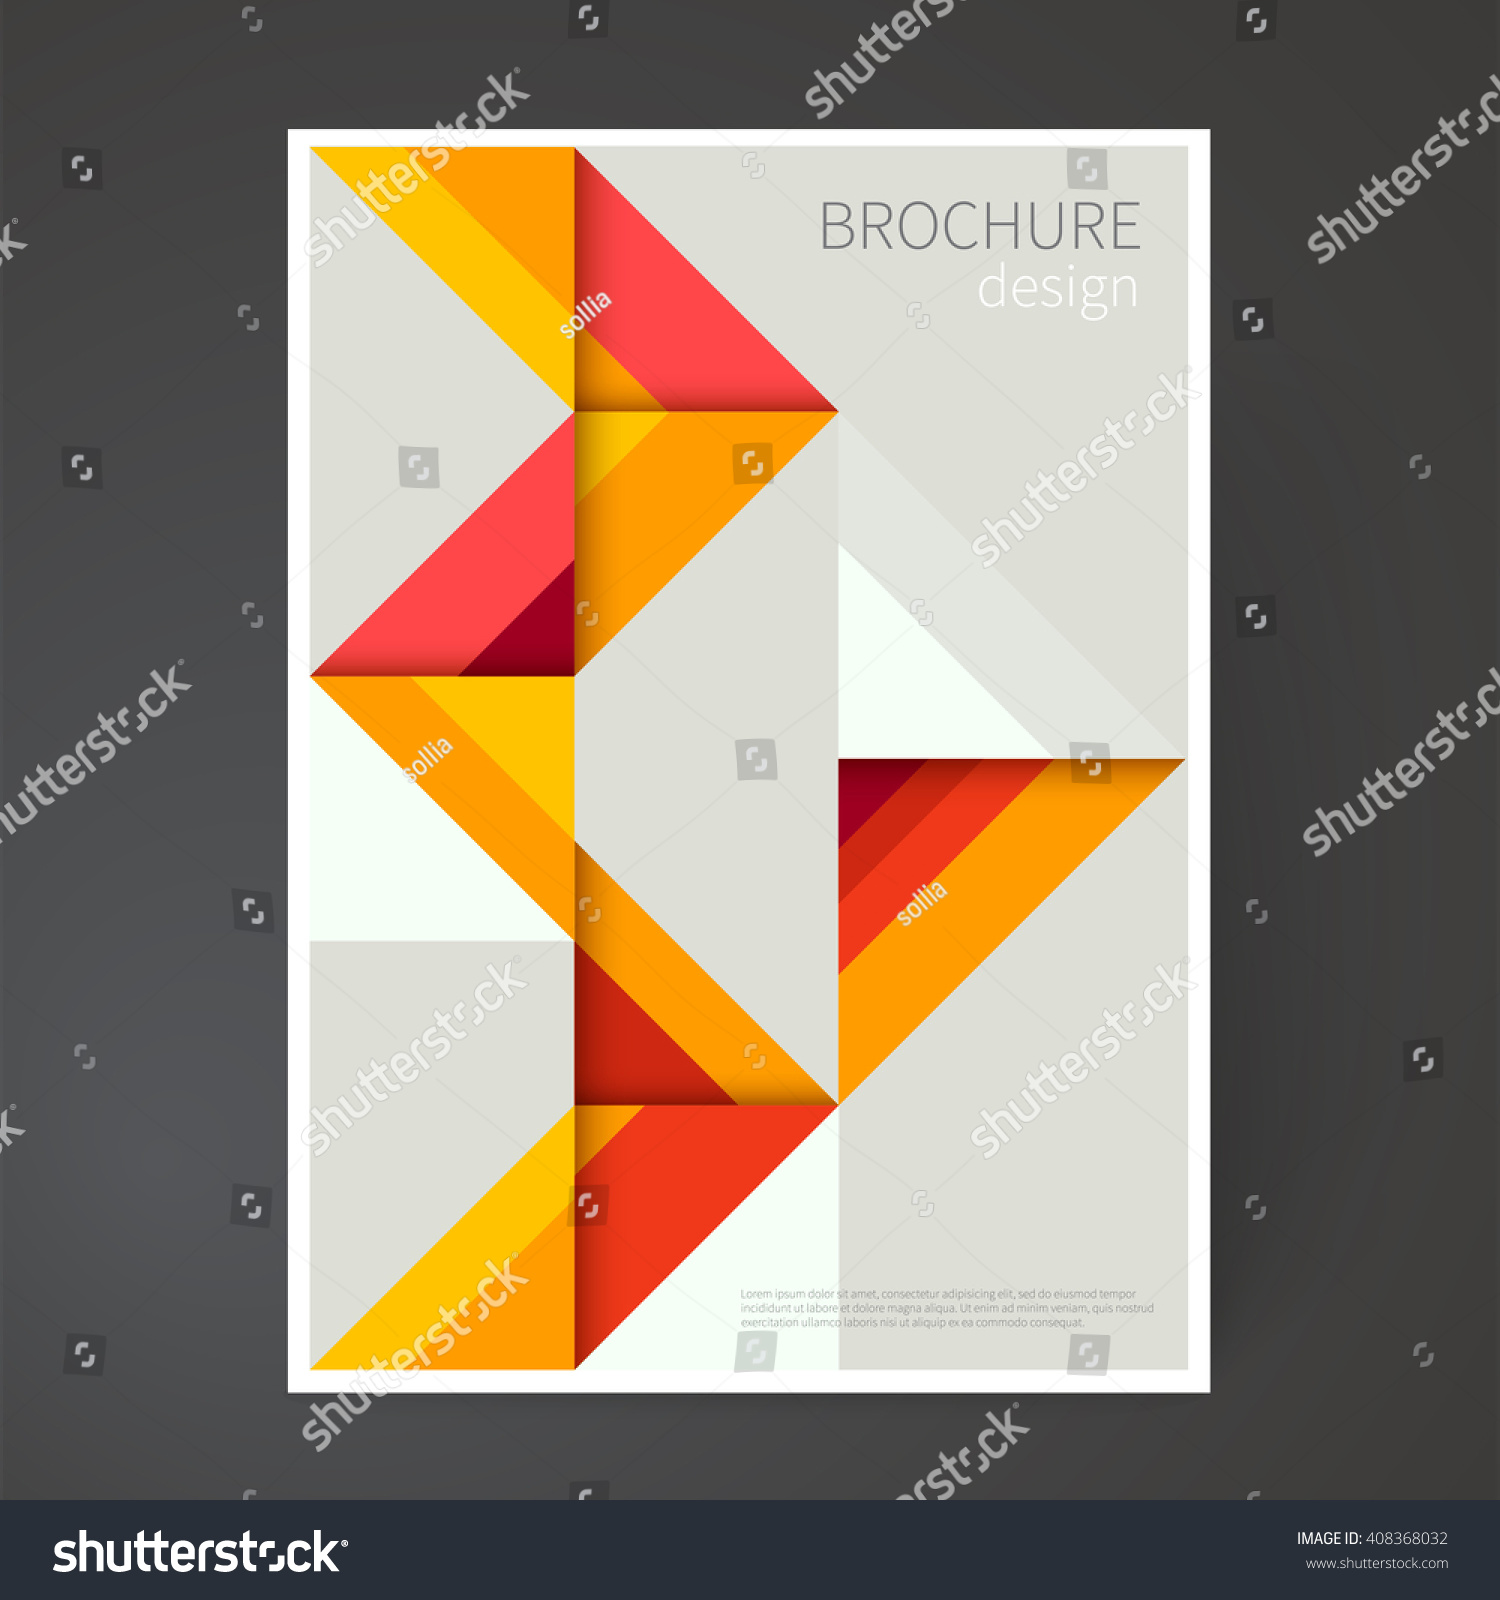 cover design template brochure leaflet flyer stock vector cover design template brochure leaflet flyer catalog page poster design